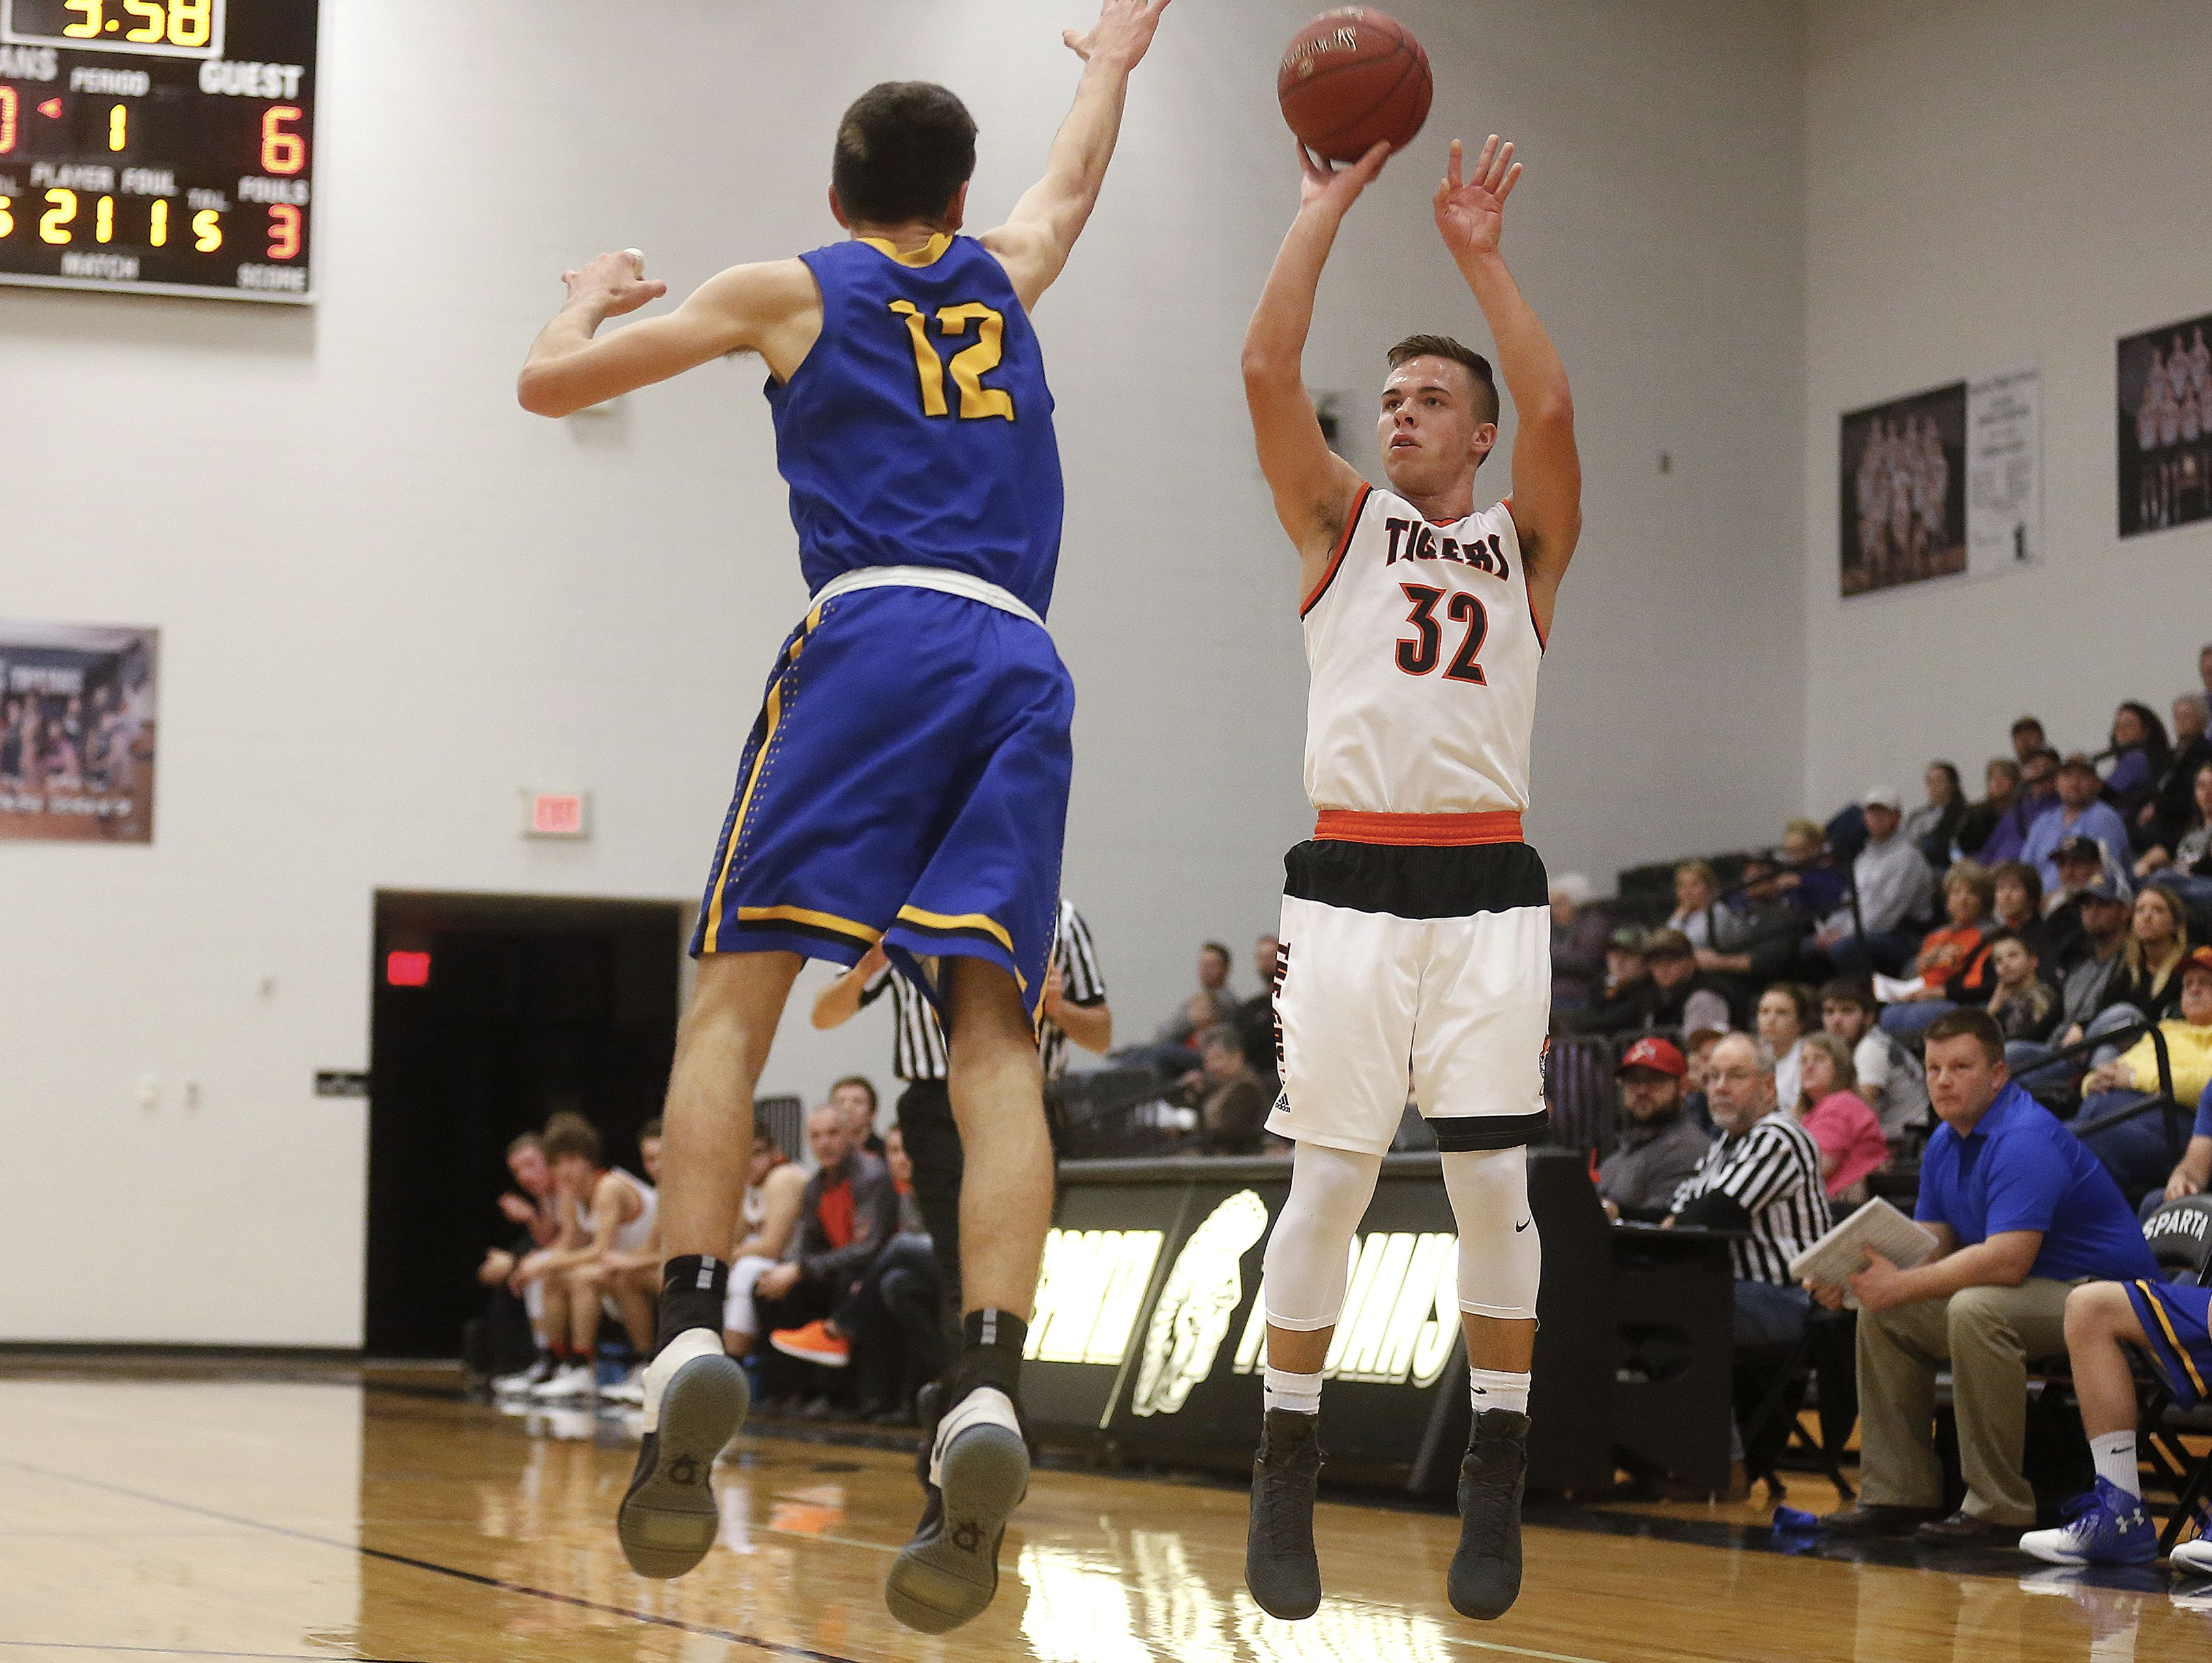 Walnut Grove High School guard Logan Thomazin (32) shoots from three-point range during first quarter action of the high school basketball game between the Walnut Grove Tigers and the Fordland Eagles at Sparta High School in Sparta, Mo. on Jan. 26, 2017. Logan Thomazin broke the Walnut Grove career scoring record with a free throw in the second quarter of the game.